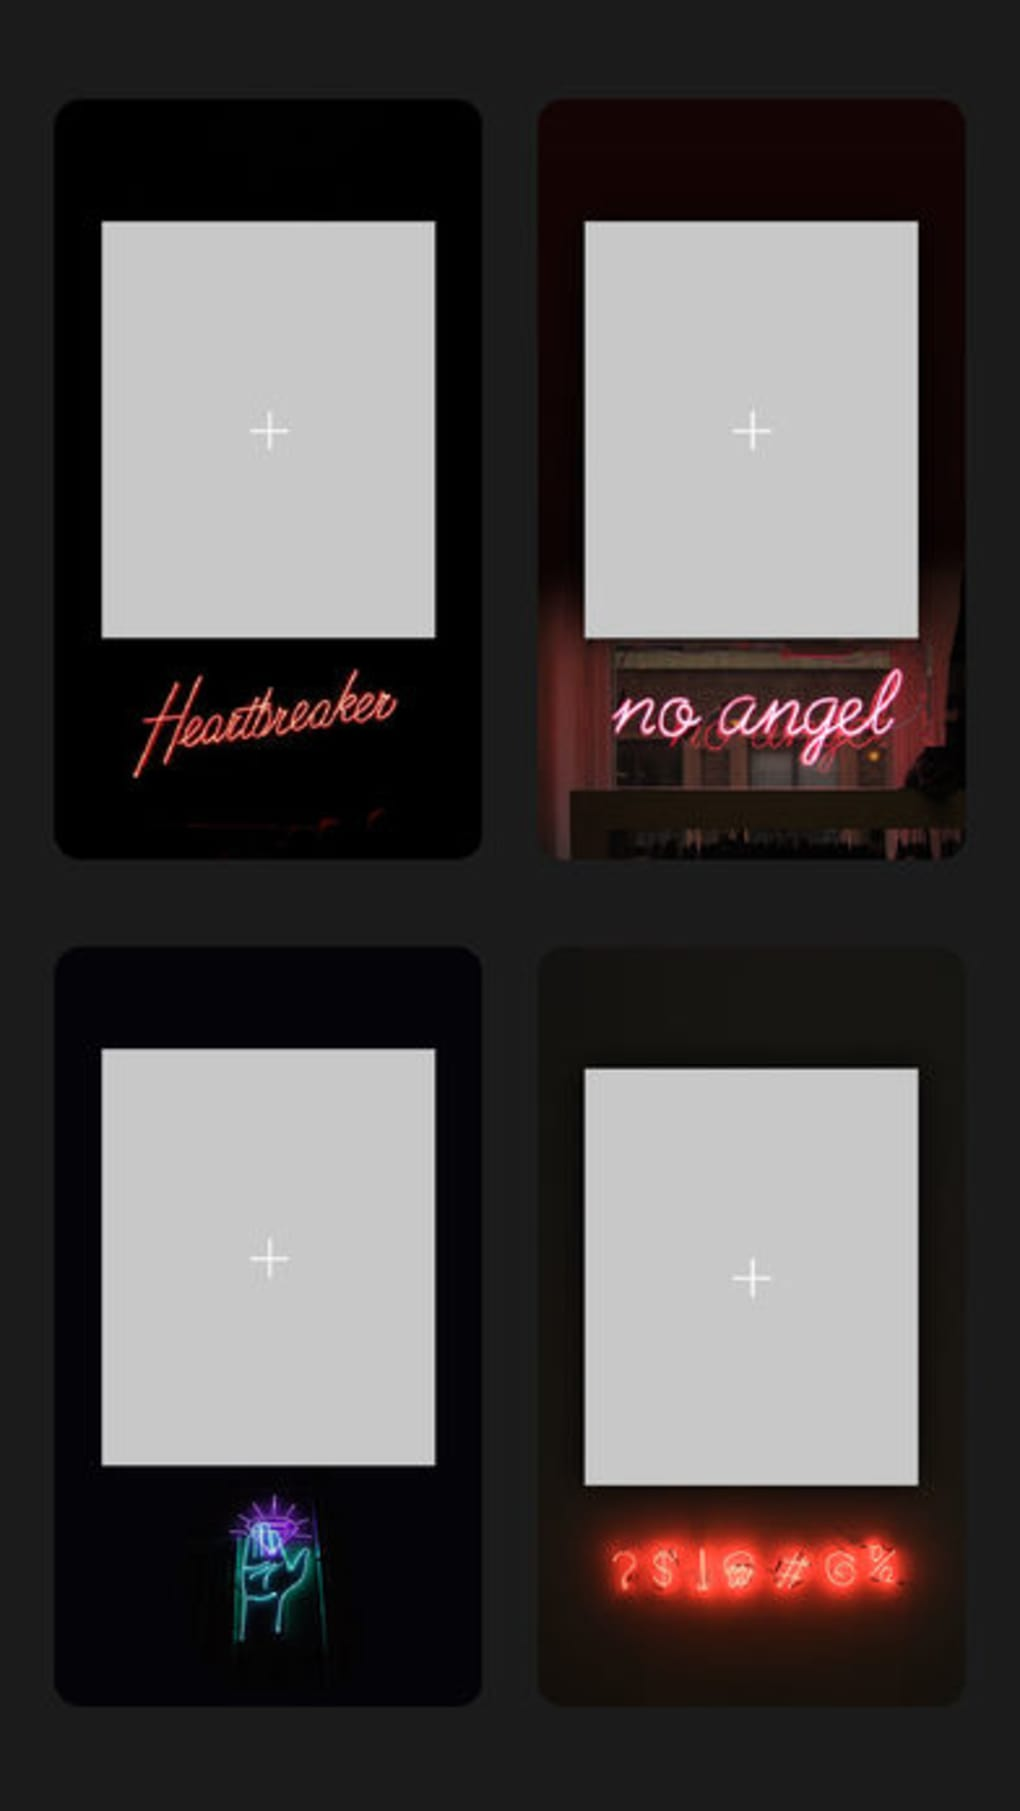 Storyluxe for iPhone - Download